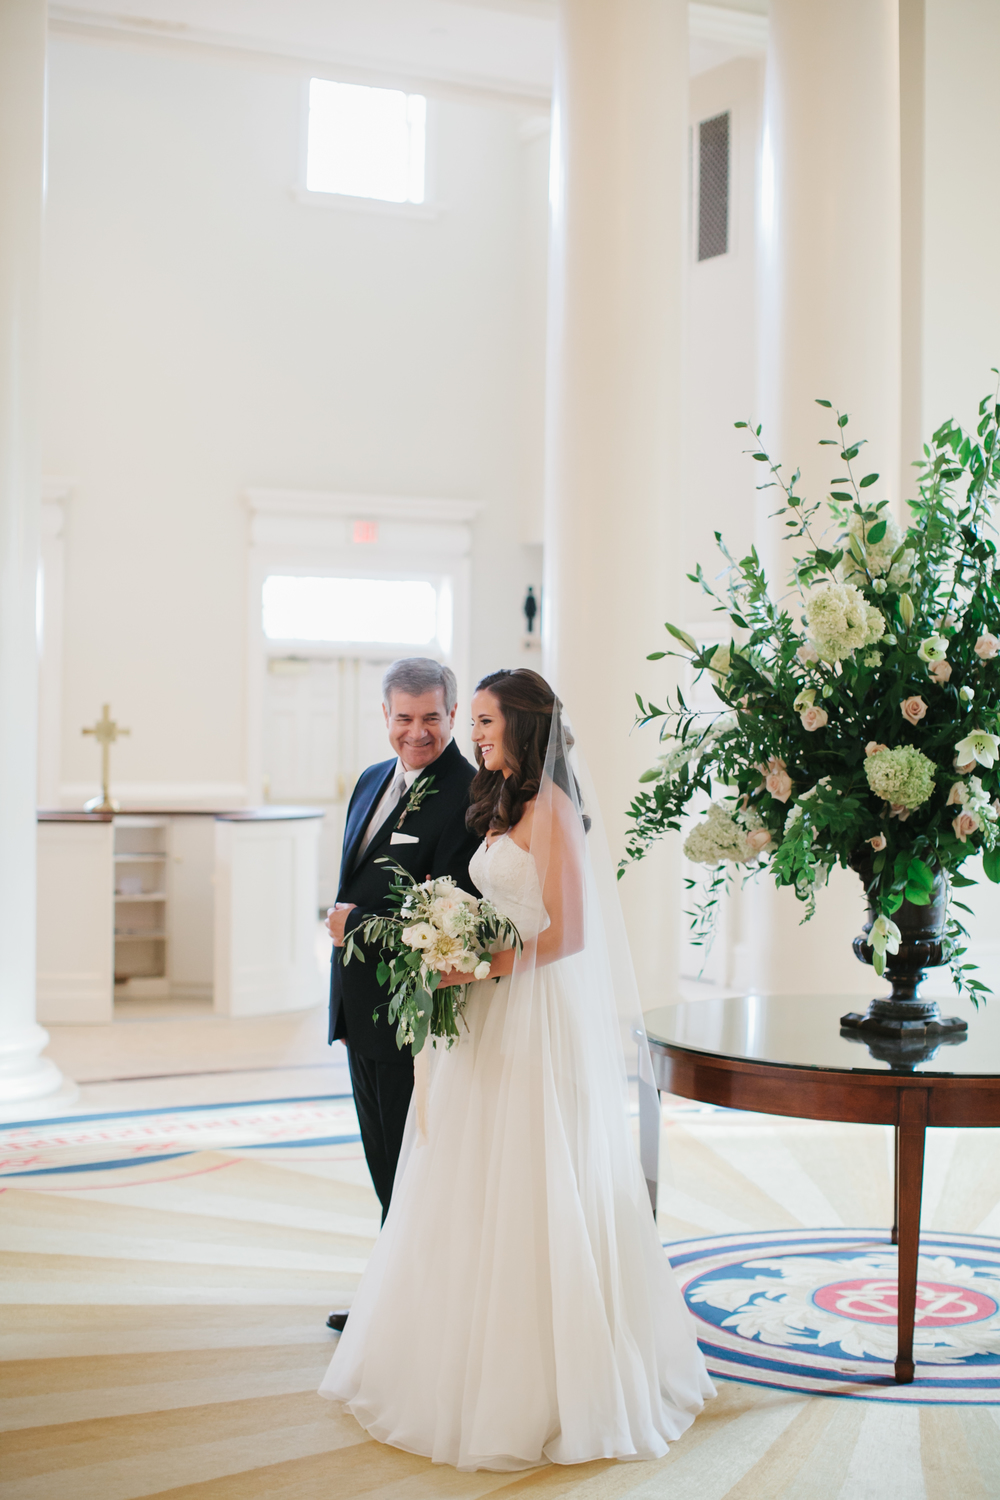 Meghan & Colin | Atlanta, Georgia | Summerour Studio Wedding | Victoria Austin Designs